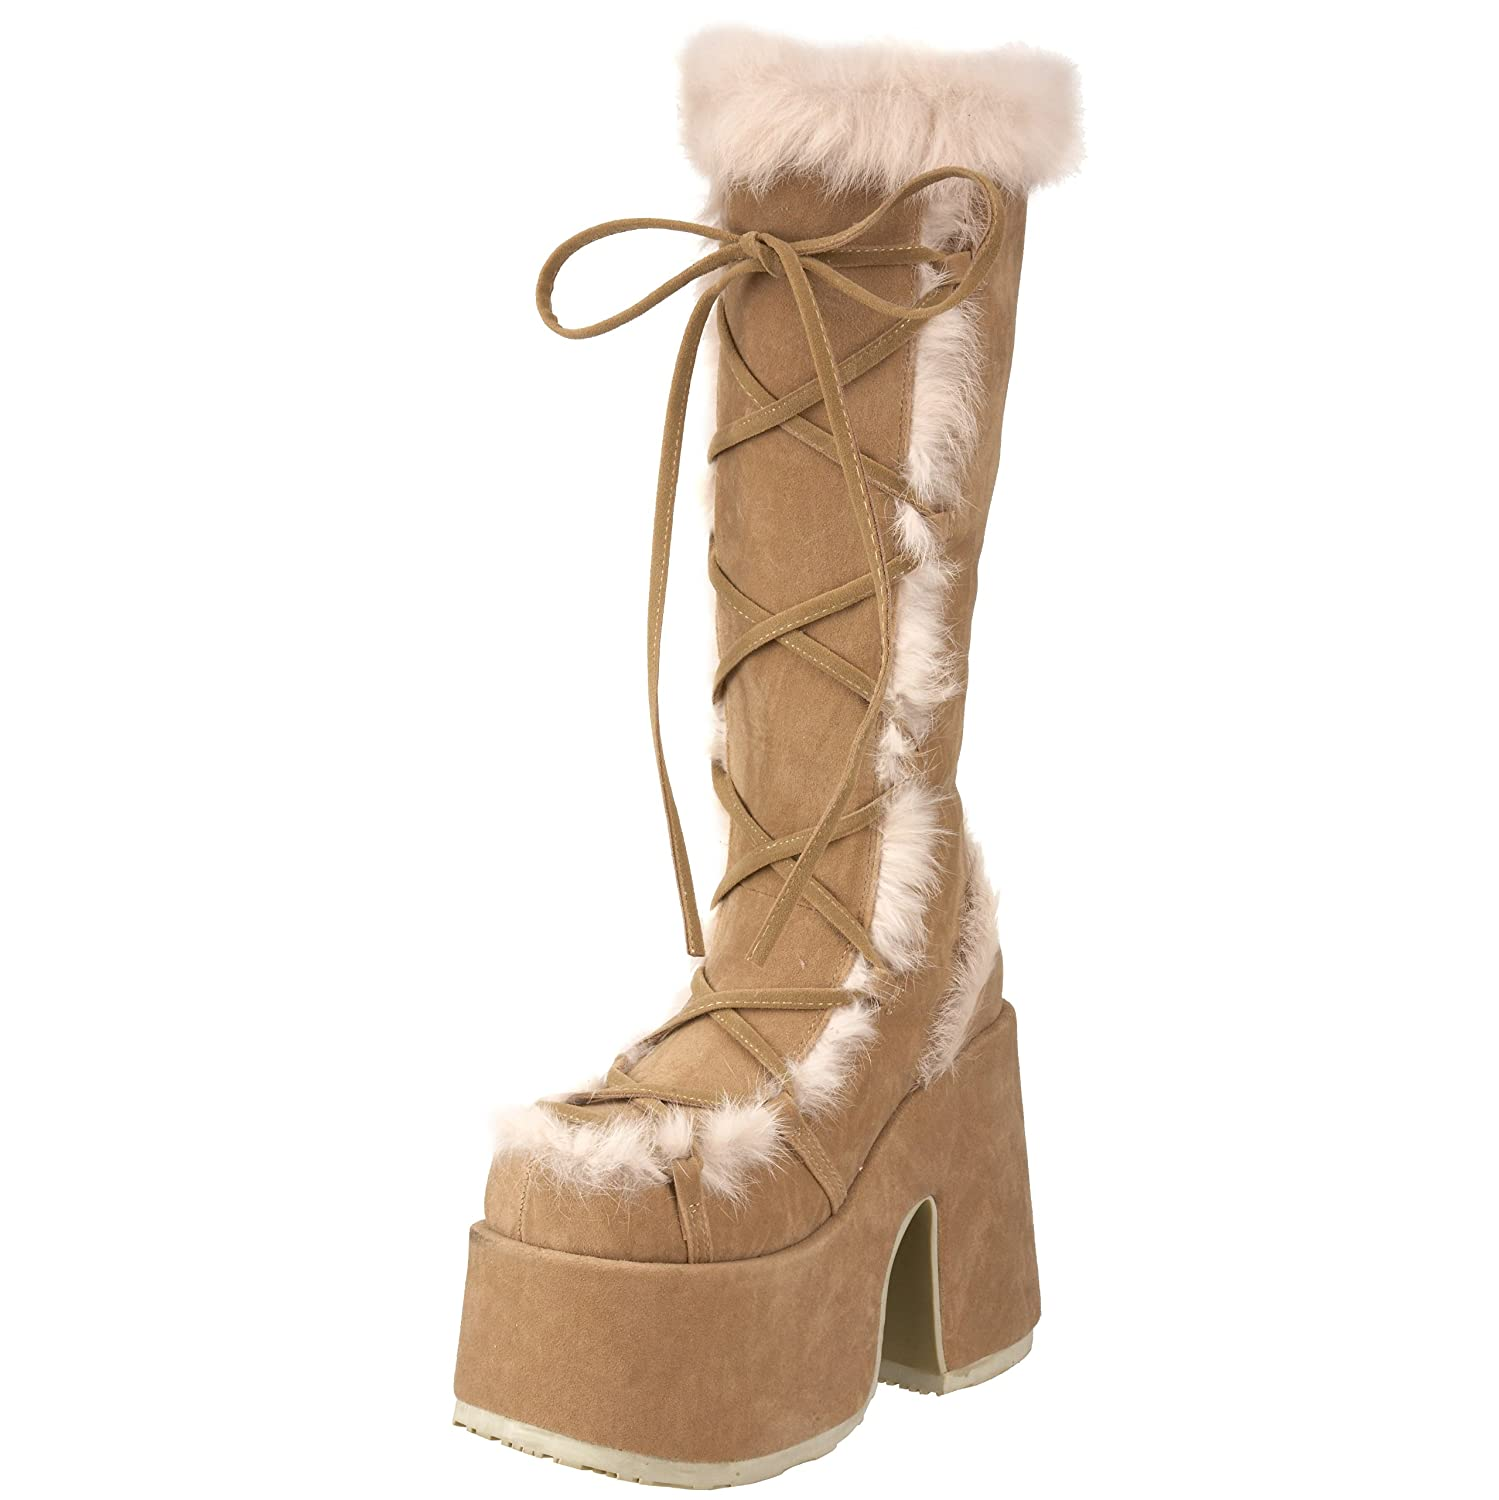 Pleaser Demonia By 10 Women's Camel-311 Boot B0013JOV16 10 By B(M) US|Camel e009c0